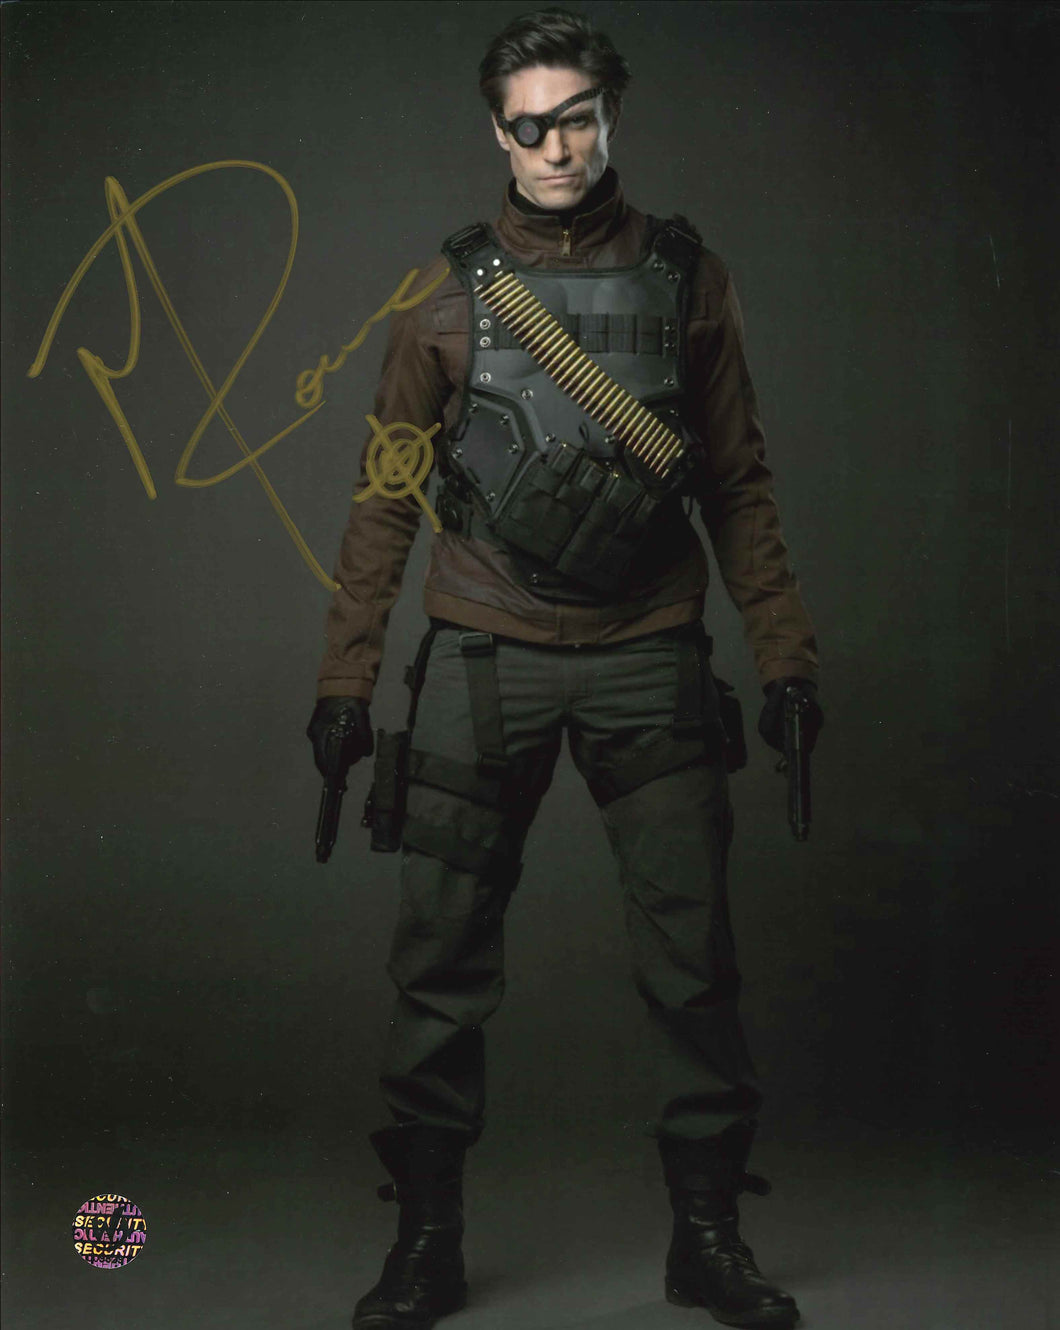 Michael Rowe Signed Arrow Photo